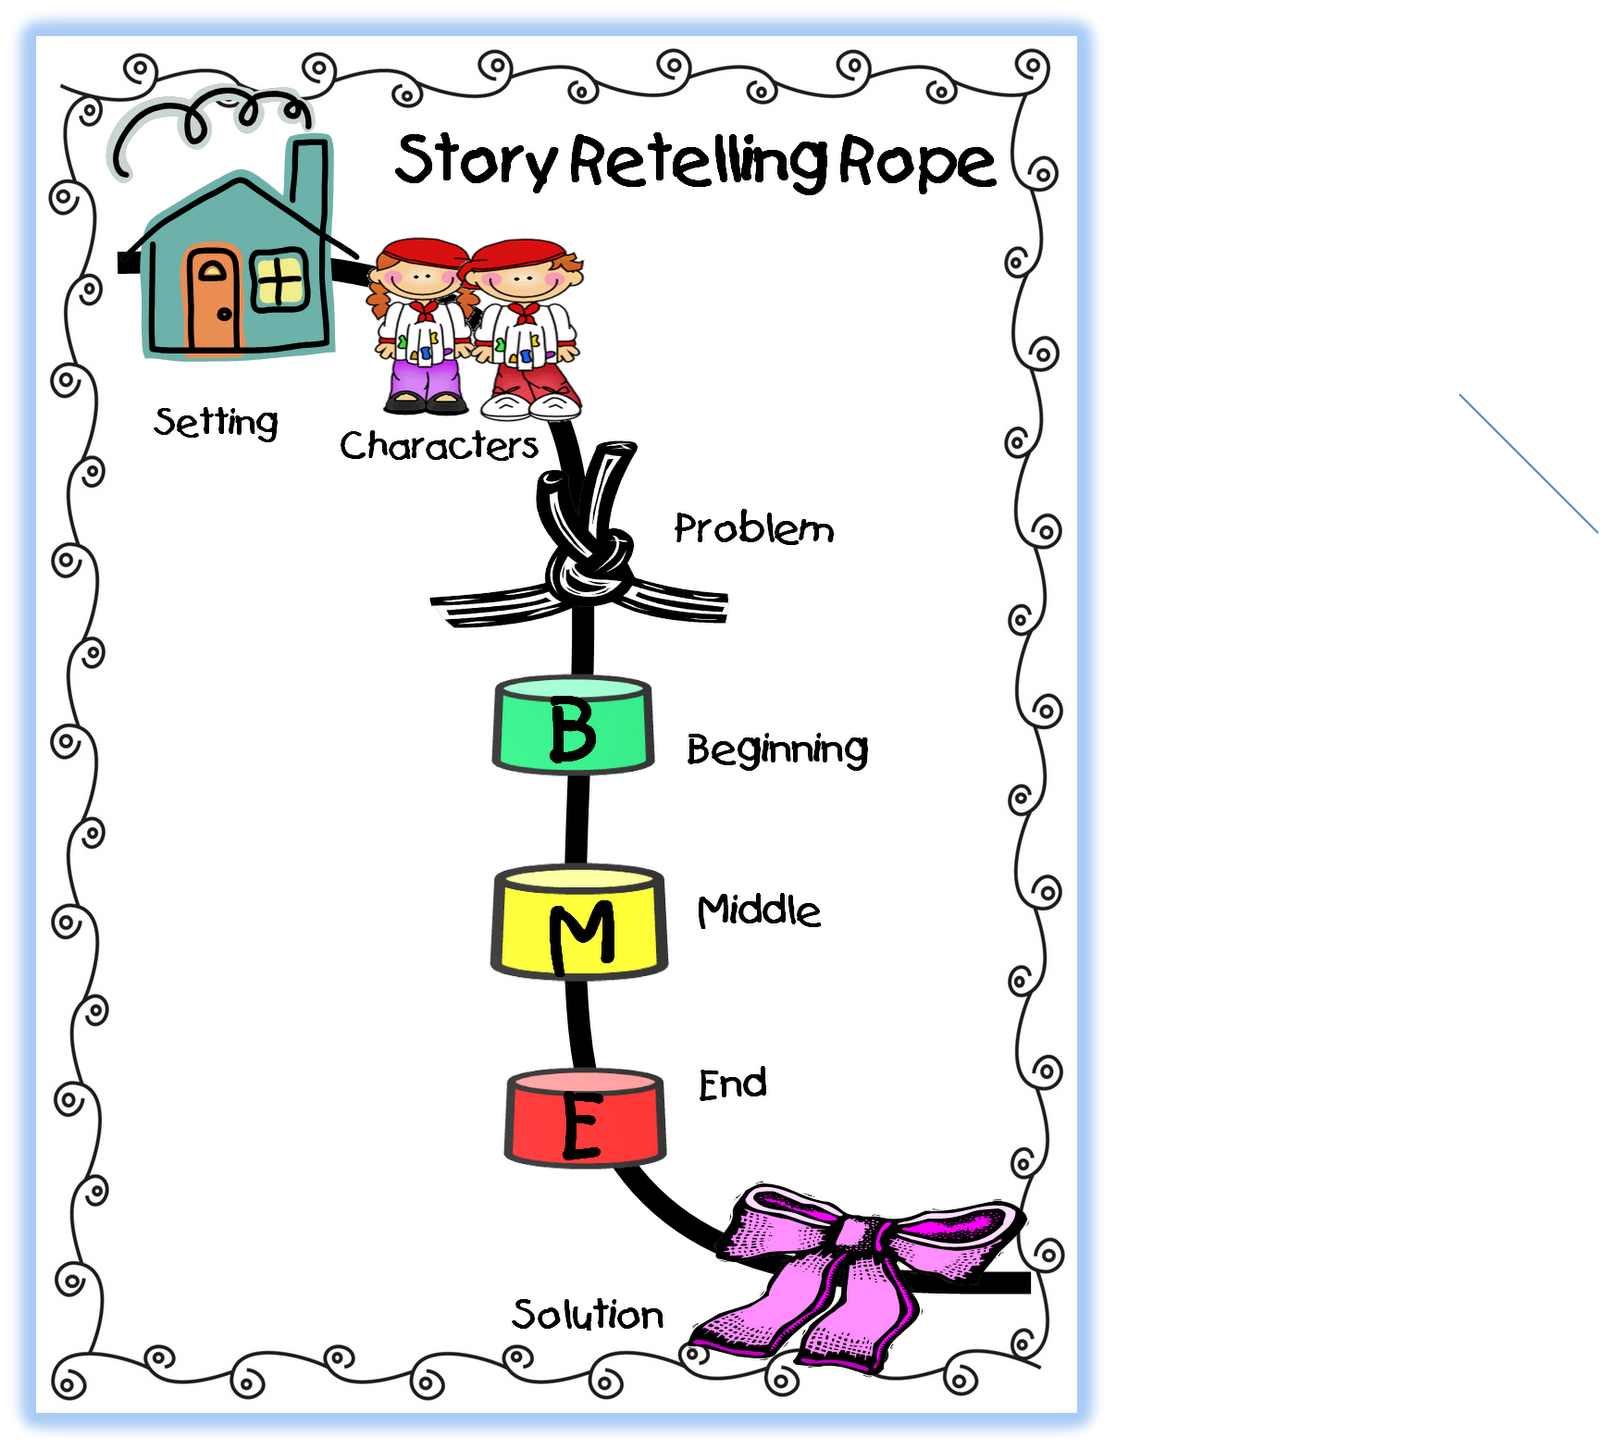 Retelling Stories With Images